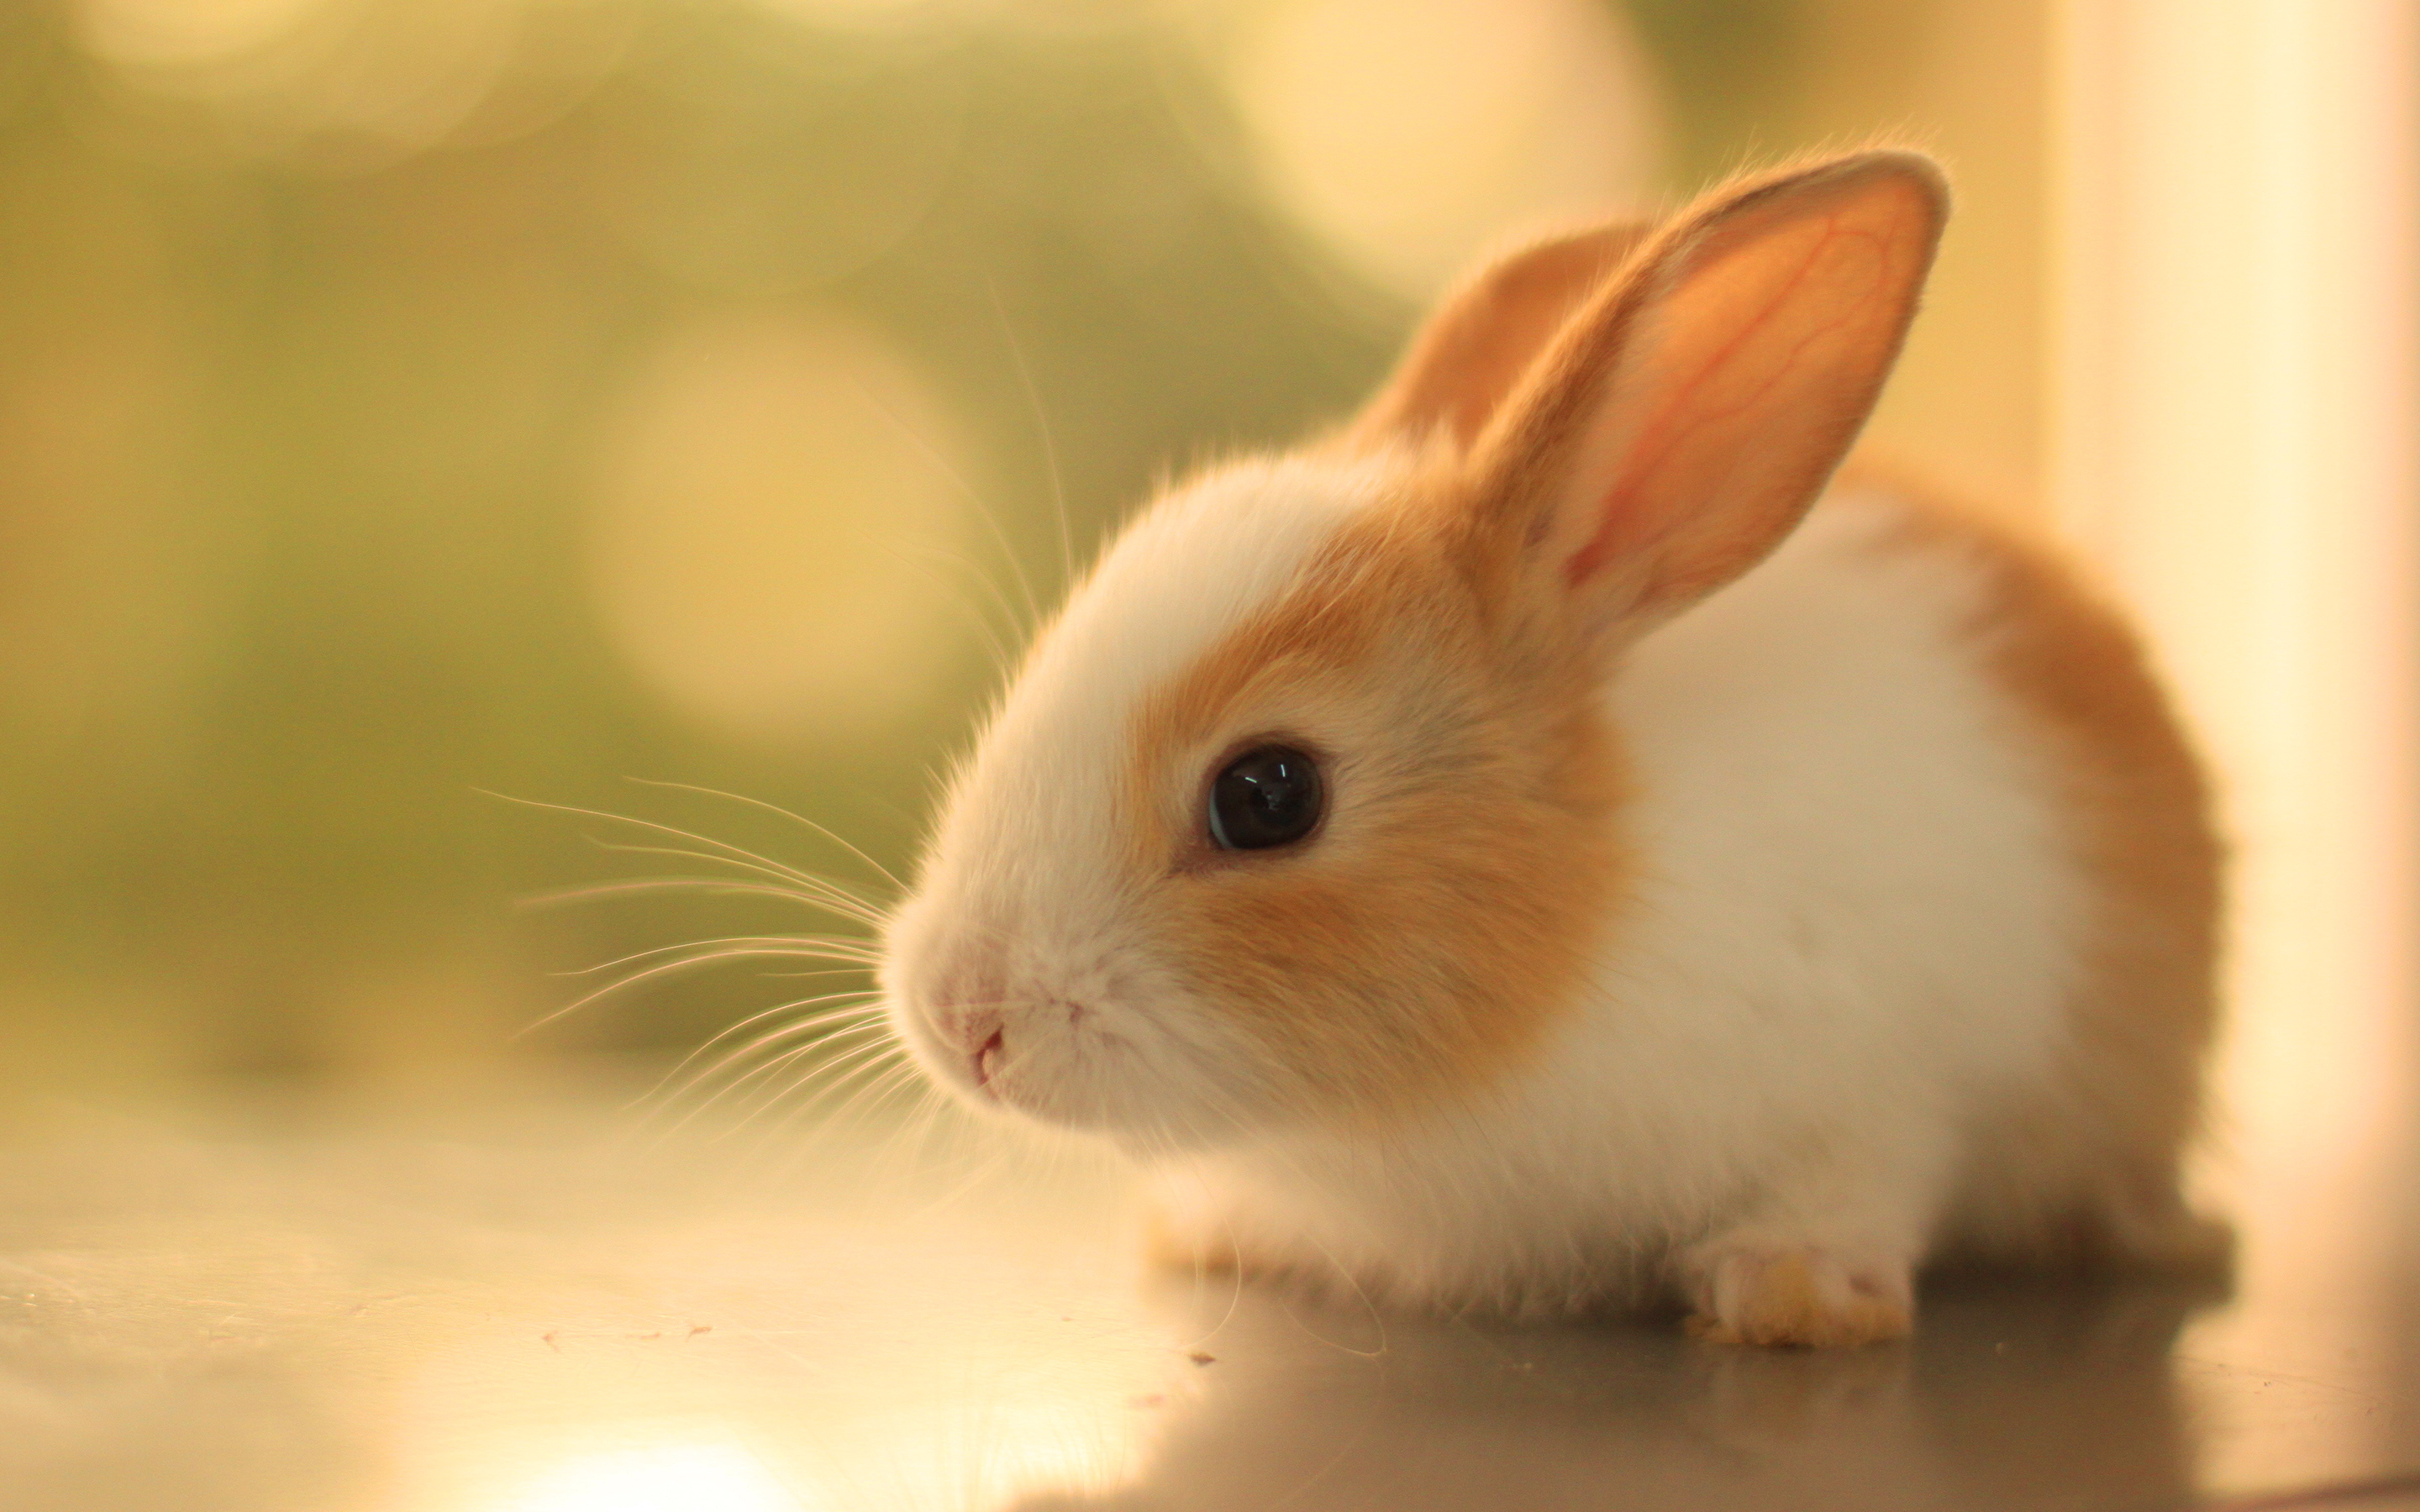 Adorable Bunny Wallpaper 2880x1800 11246